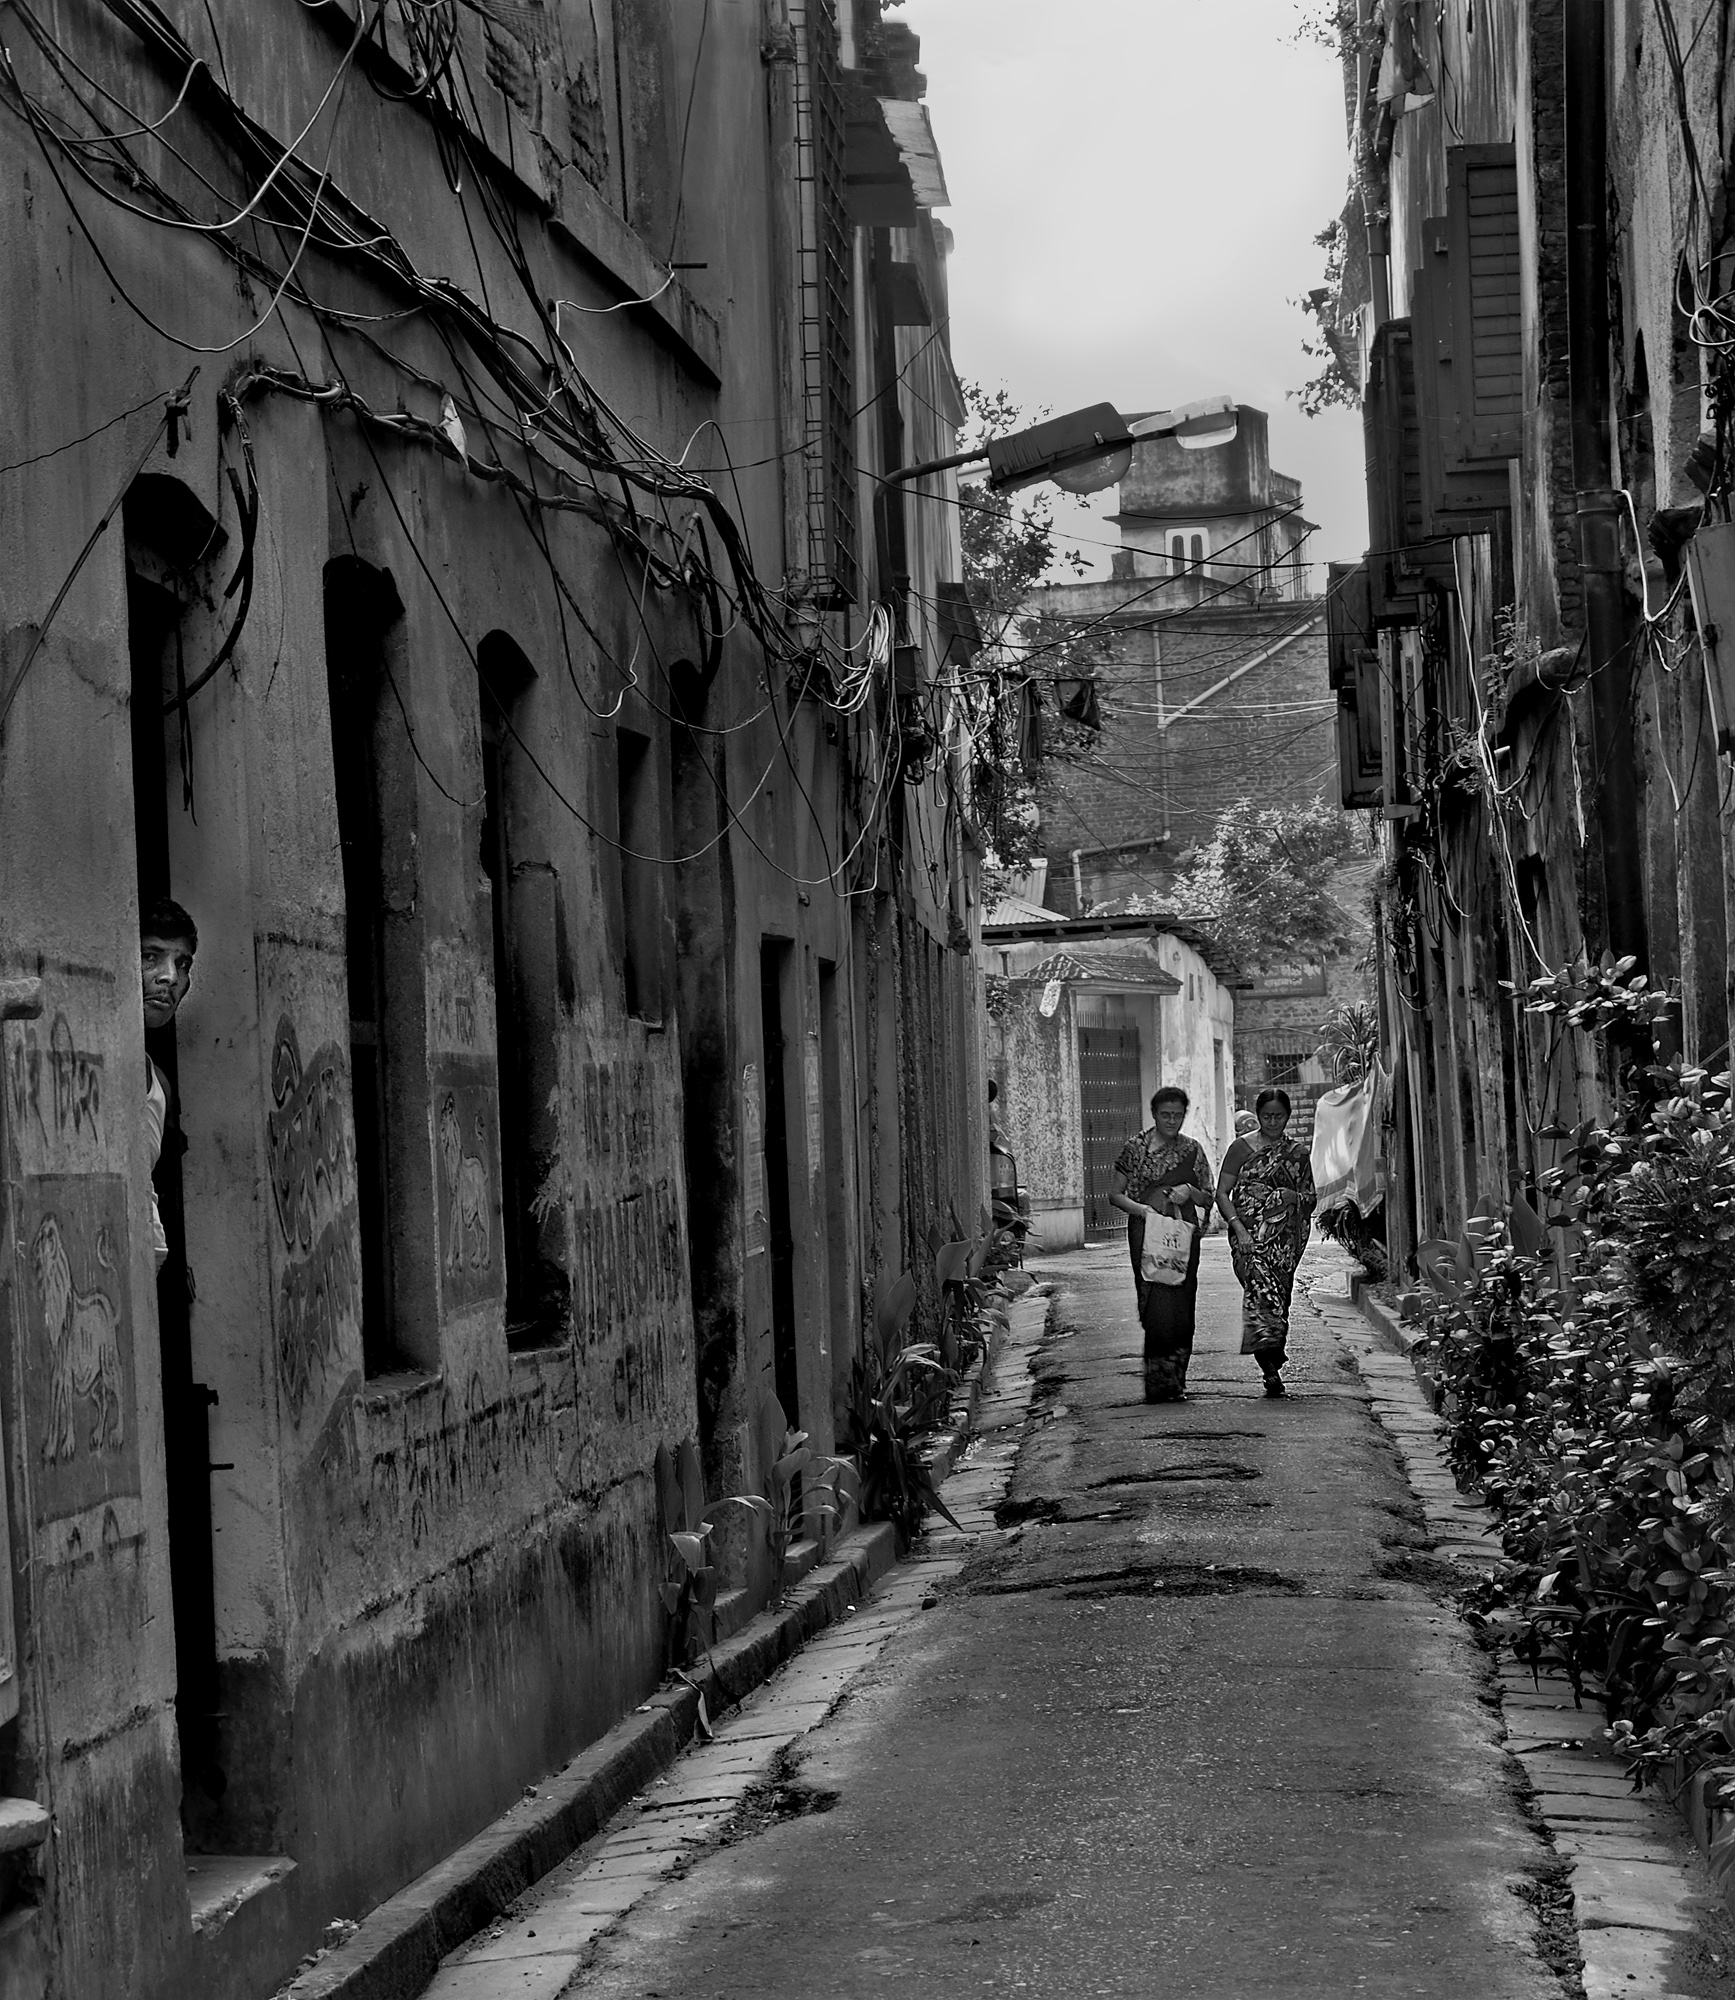 This is a photograph taken from an alley in north kolkata in west bengal india